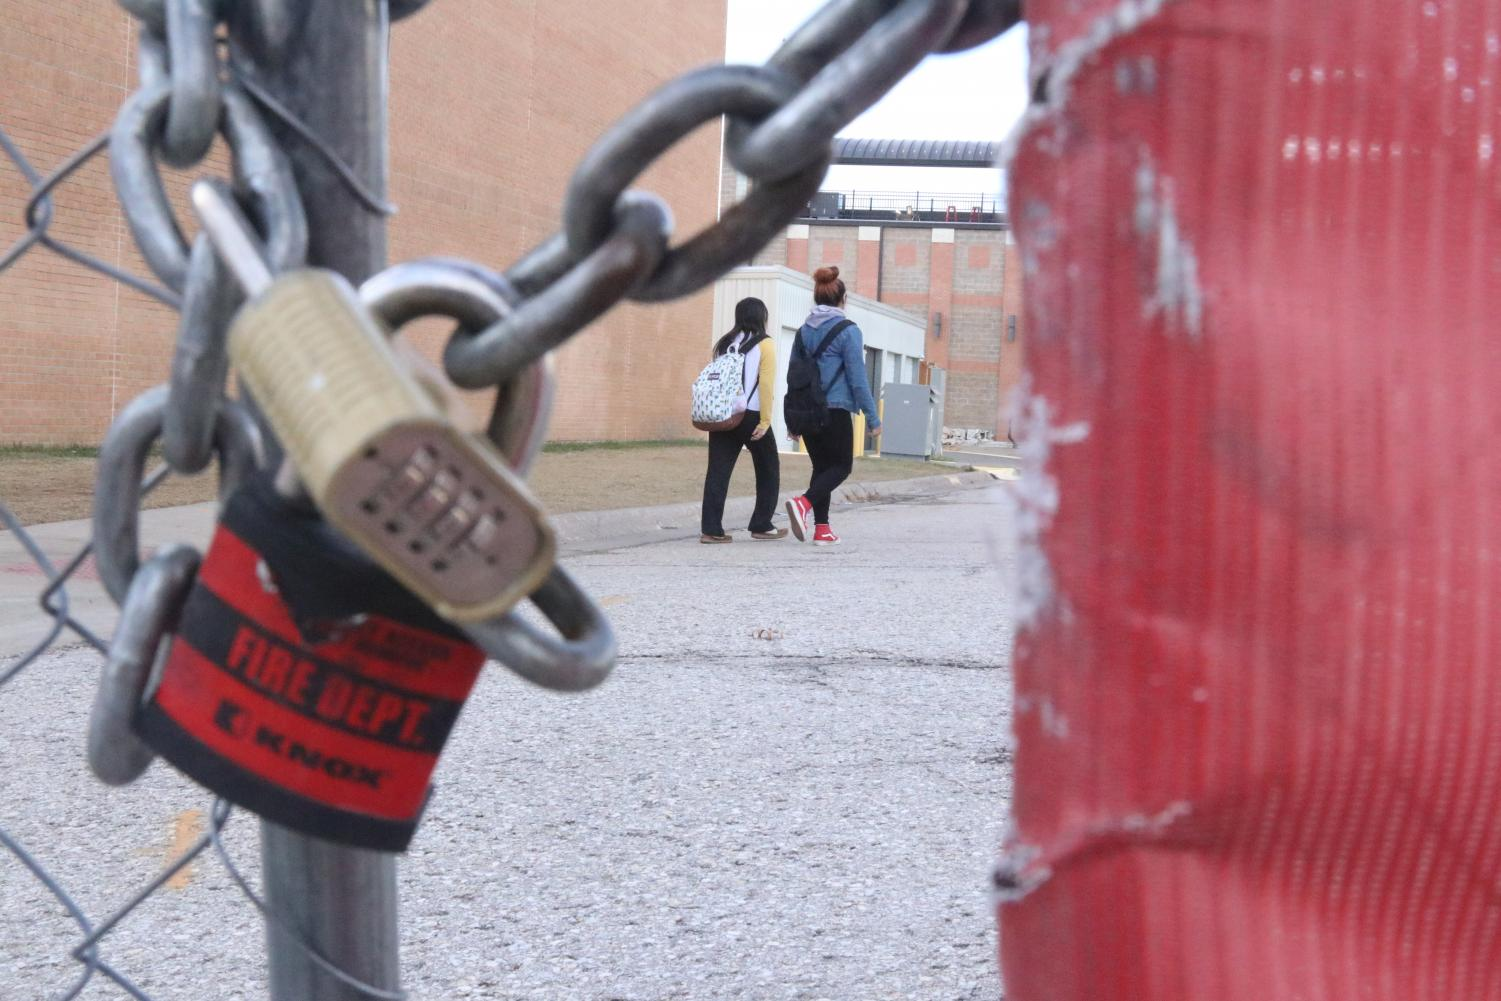 LOCKED DOWN — Behind the chain-linked fence, students make their way to class. New security measures have been implemented across the campus this year.